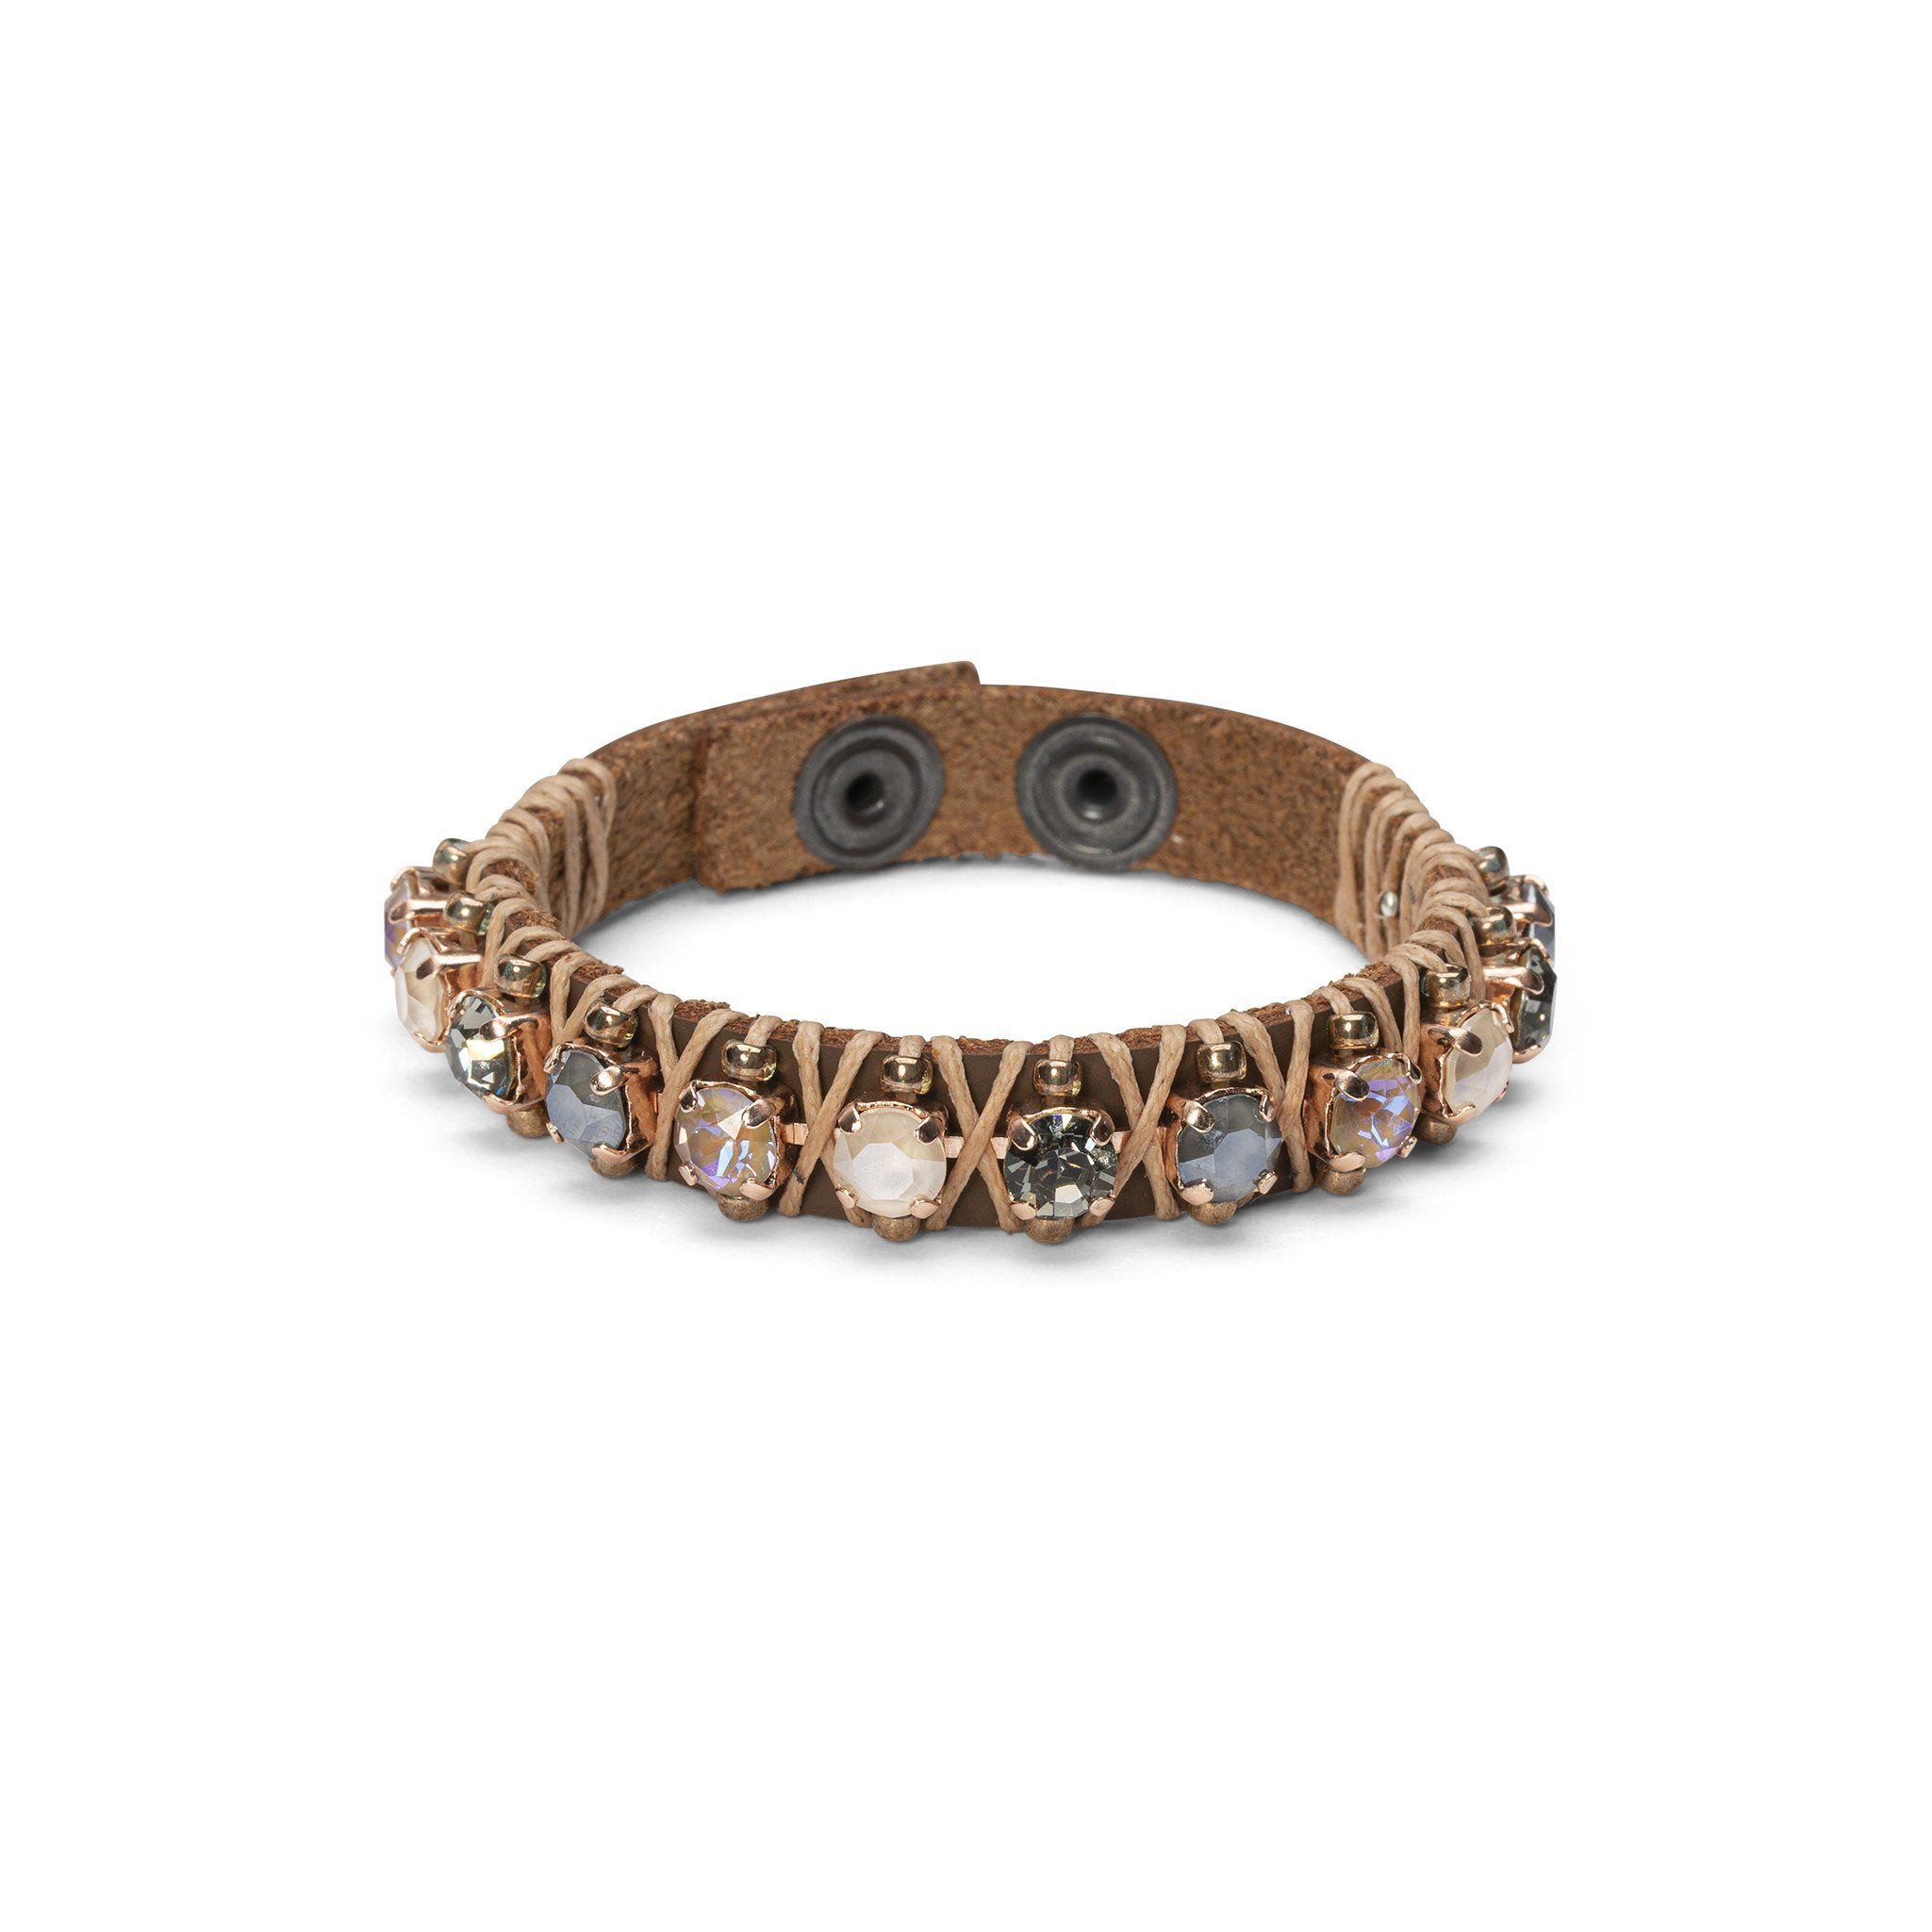 North Star Bracelet - Creme